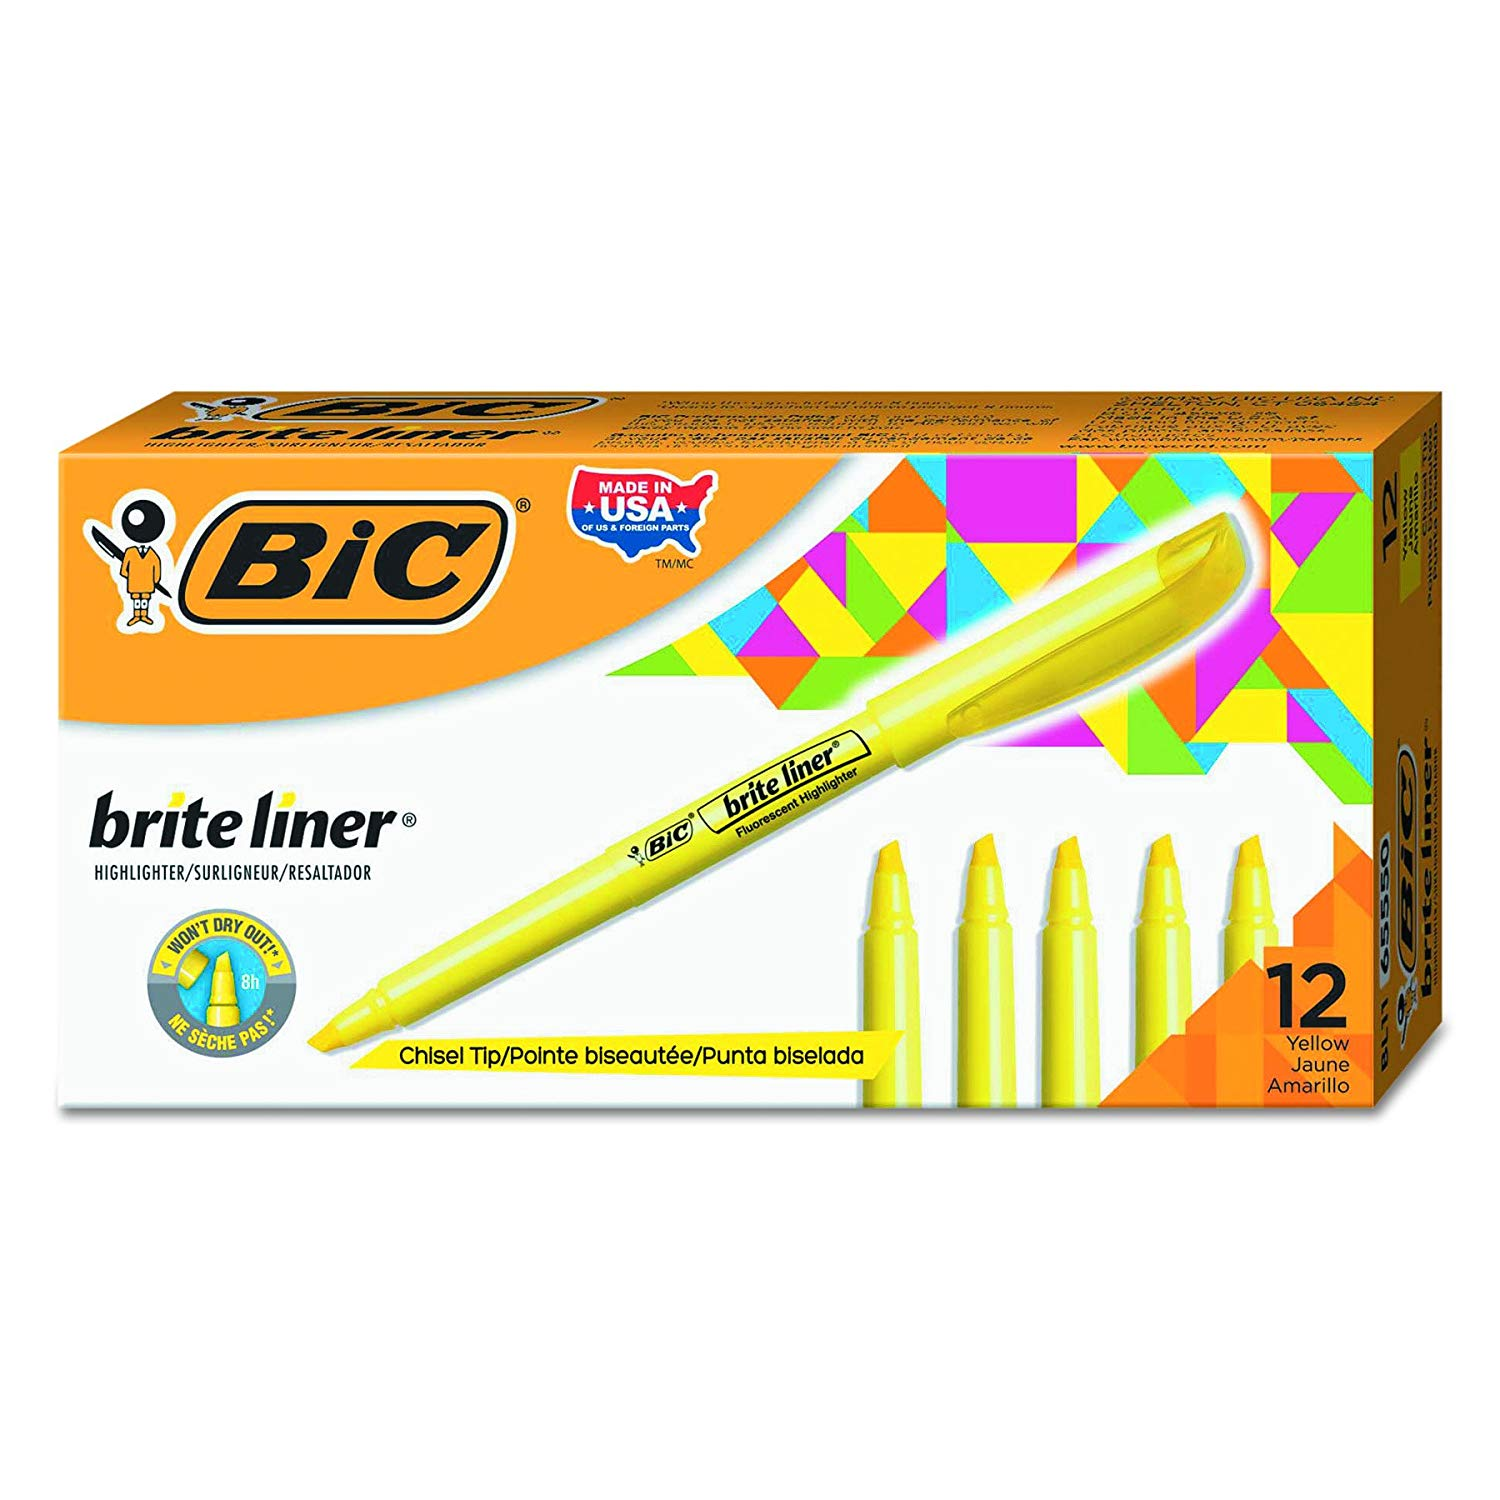 Brite Liner Highlighter, Chisel Tip, Yellow, 12-Count BIC - 12 Count